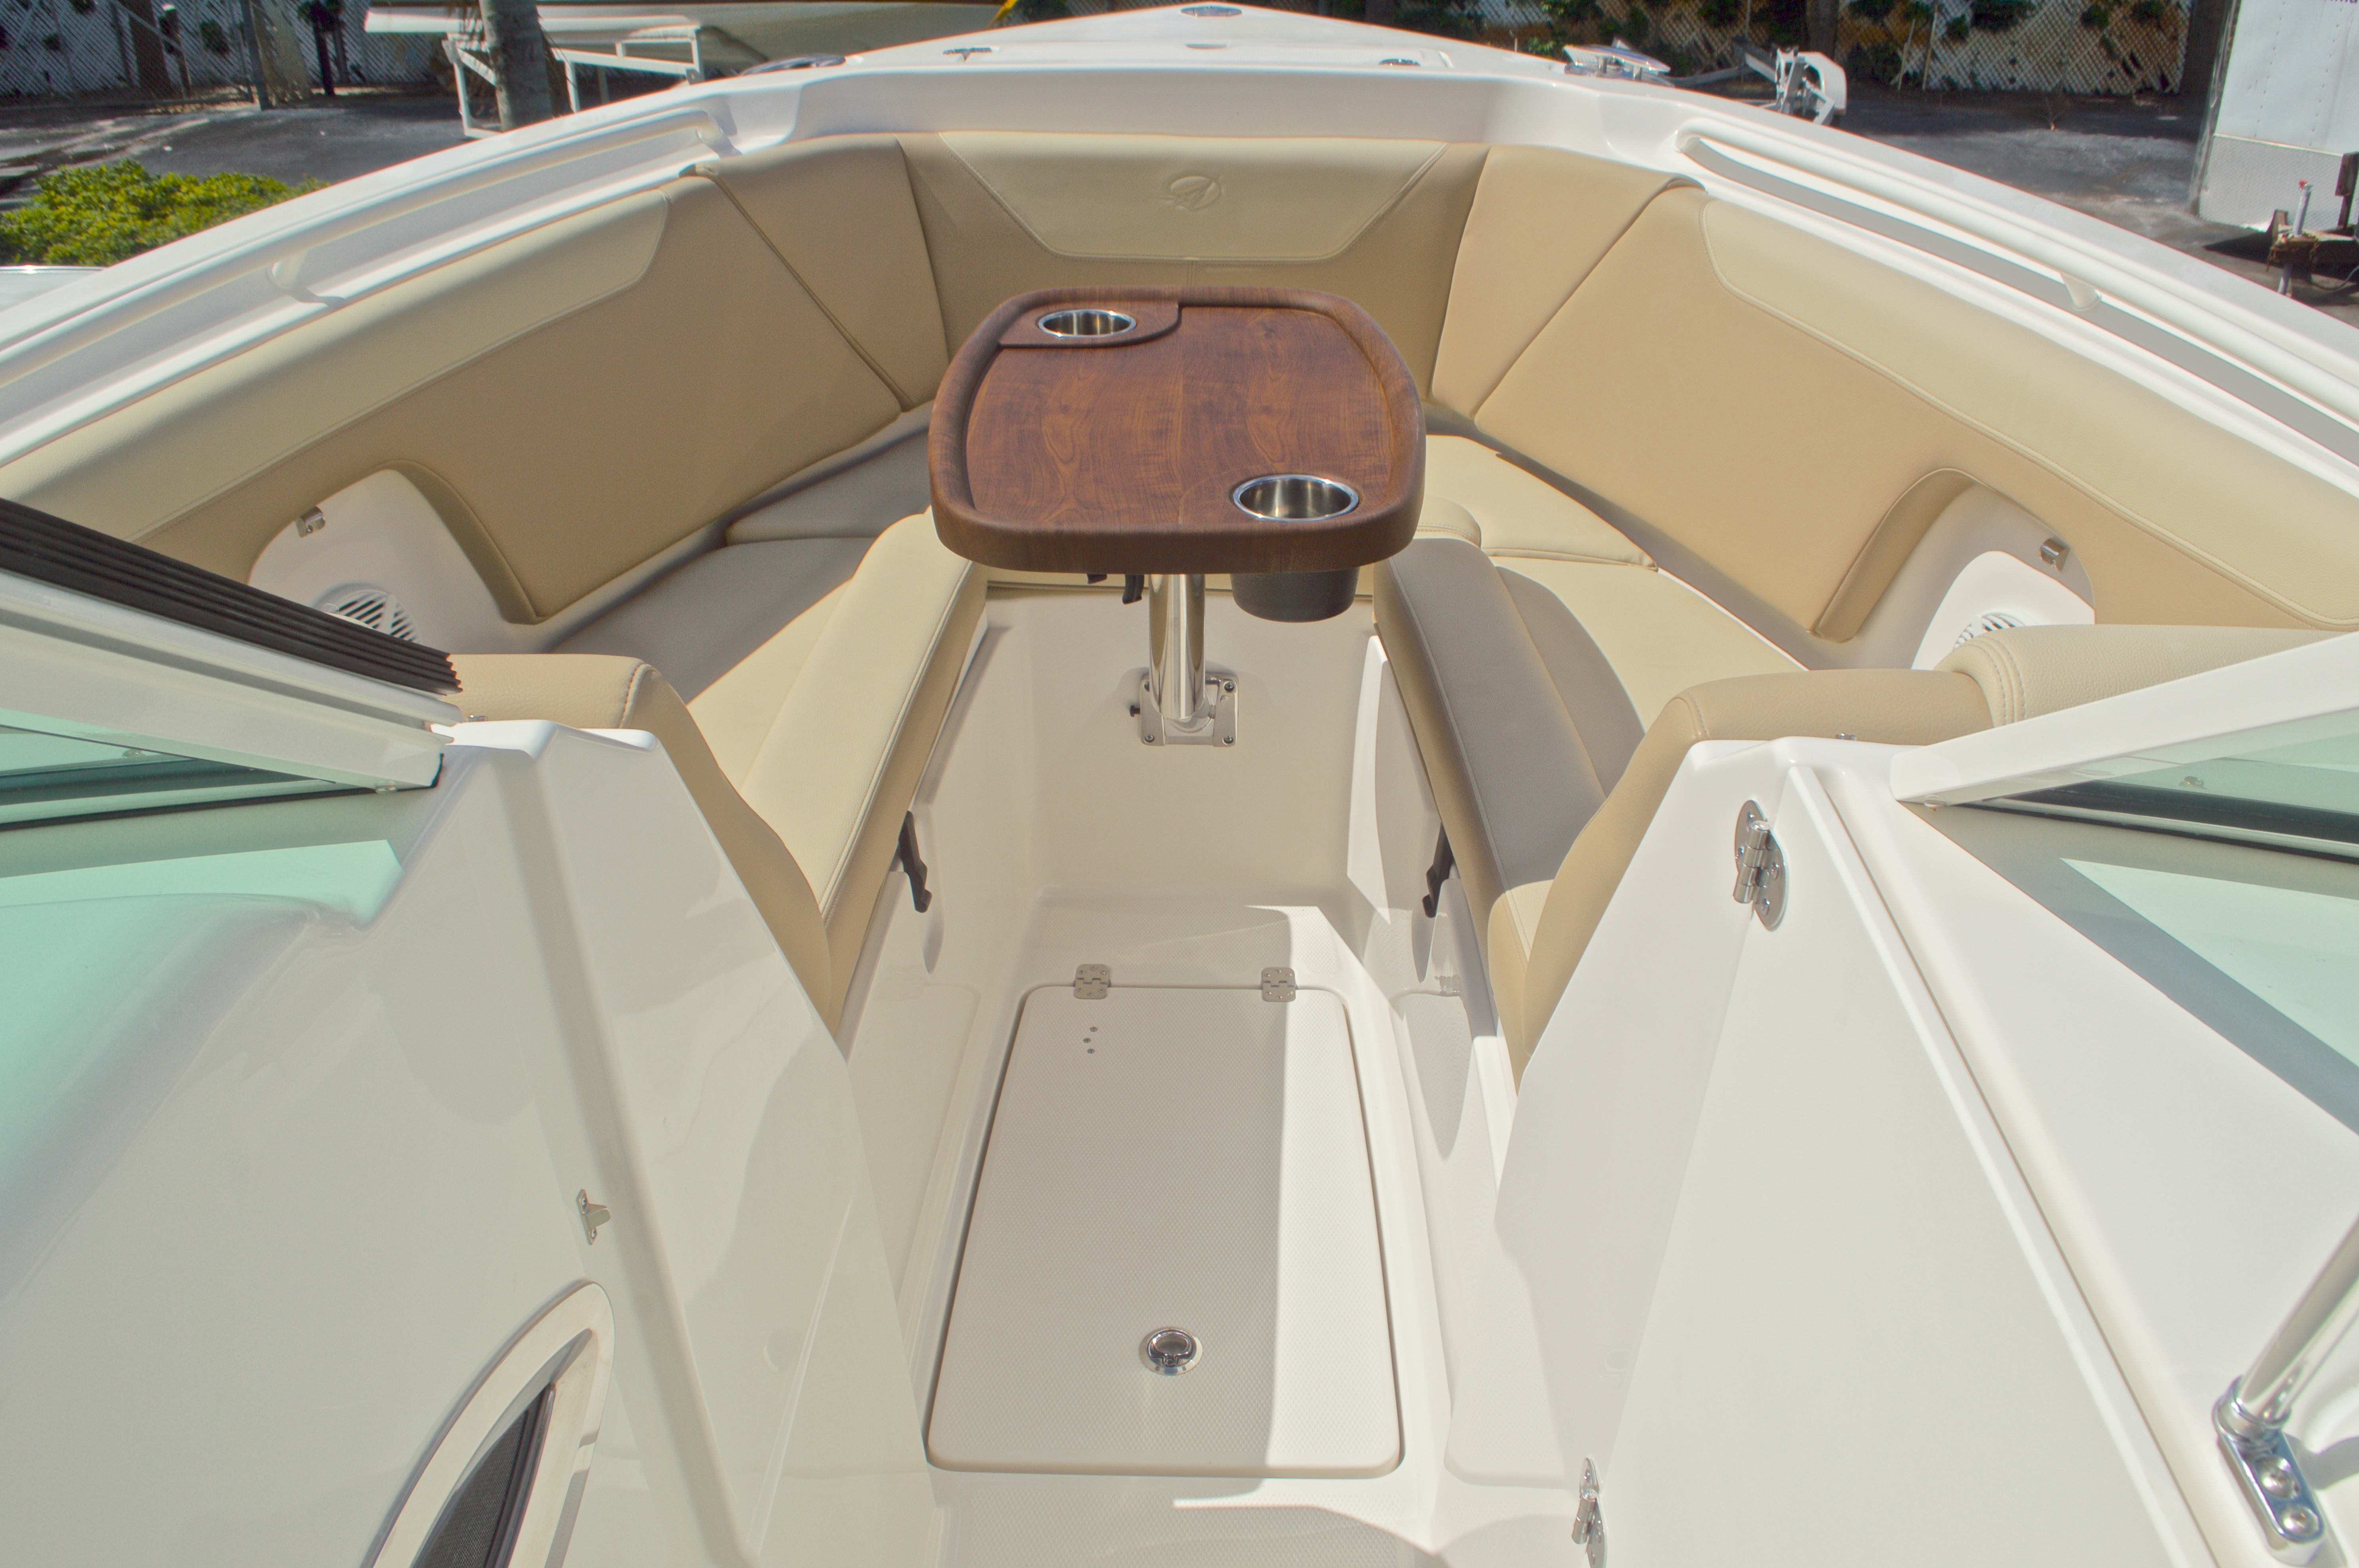 Thumbnail 54 for New 2017 Sailfish 275 Dual Console boat for sale in Vero Beach, FL